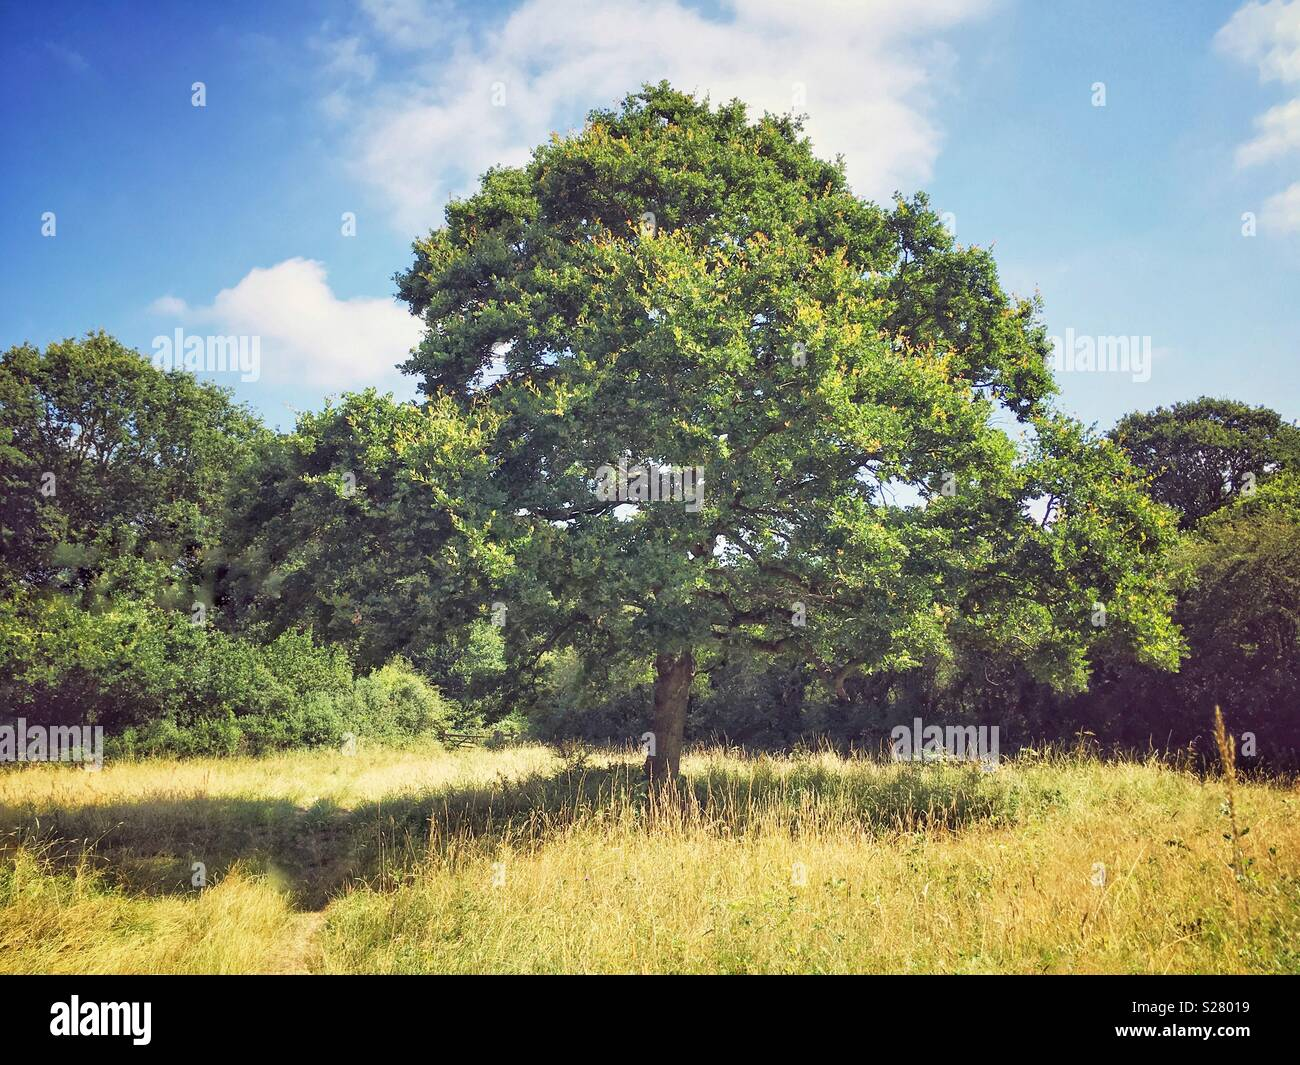 An Oak tree in the meadow on a Summer's day. - Stock Image